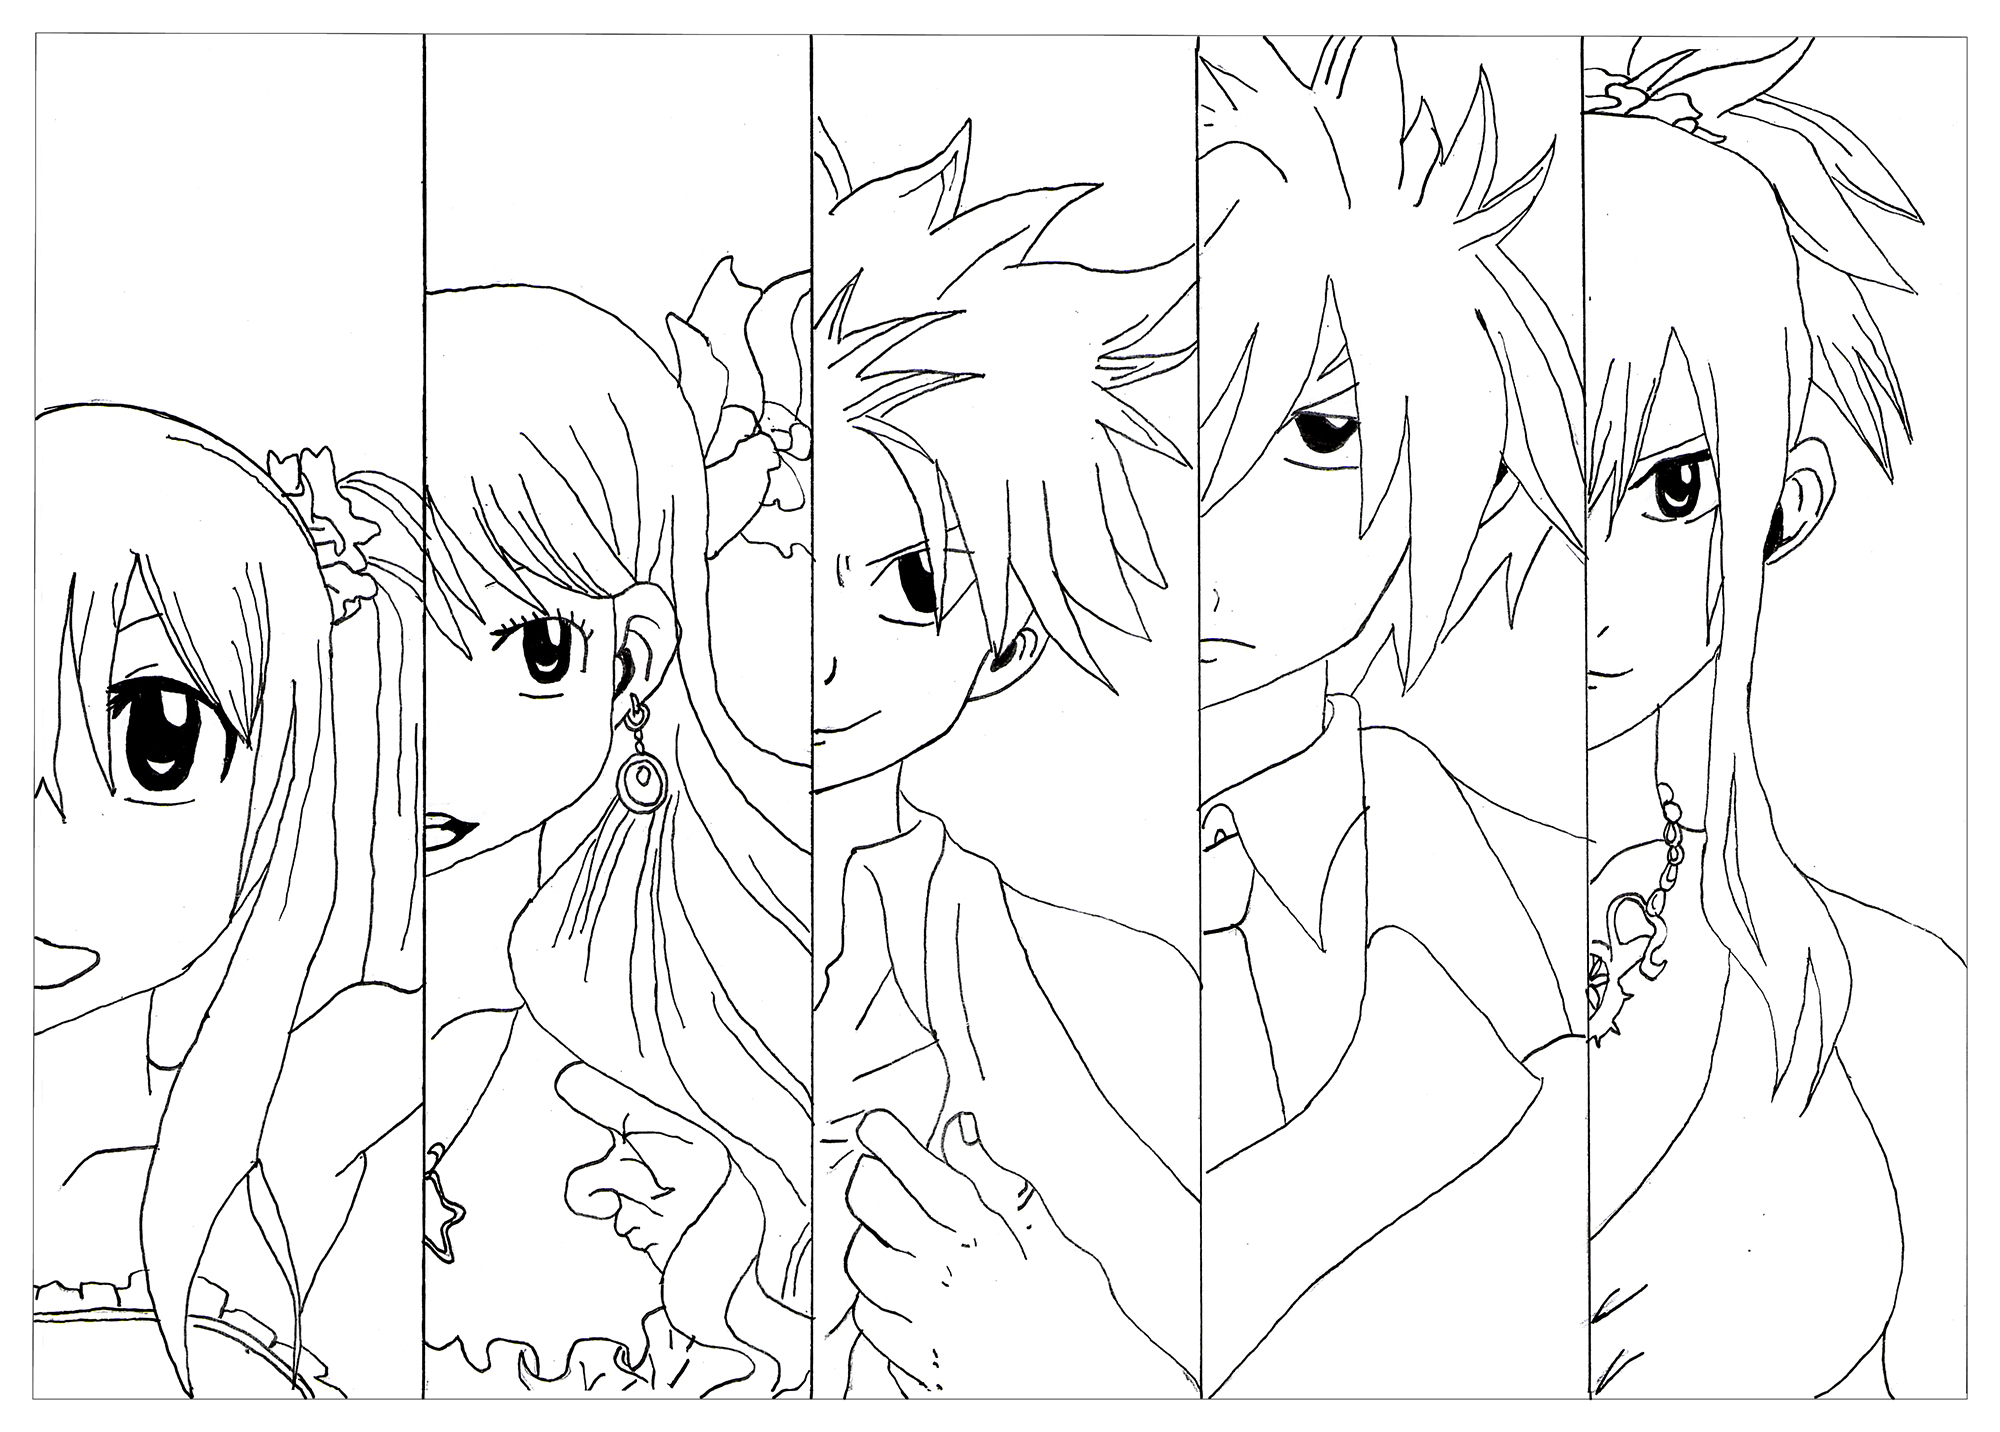 Colored manga websites - Here Is A Coloring Page Of The 5 Members That Form The Strongest Team In The